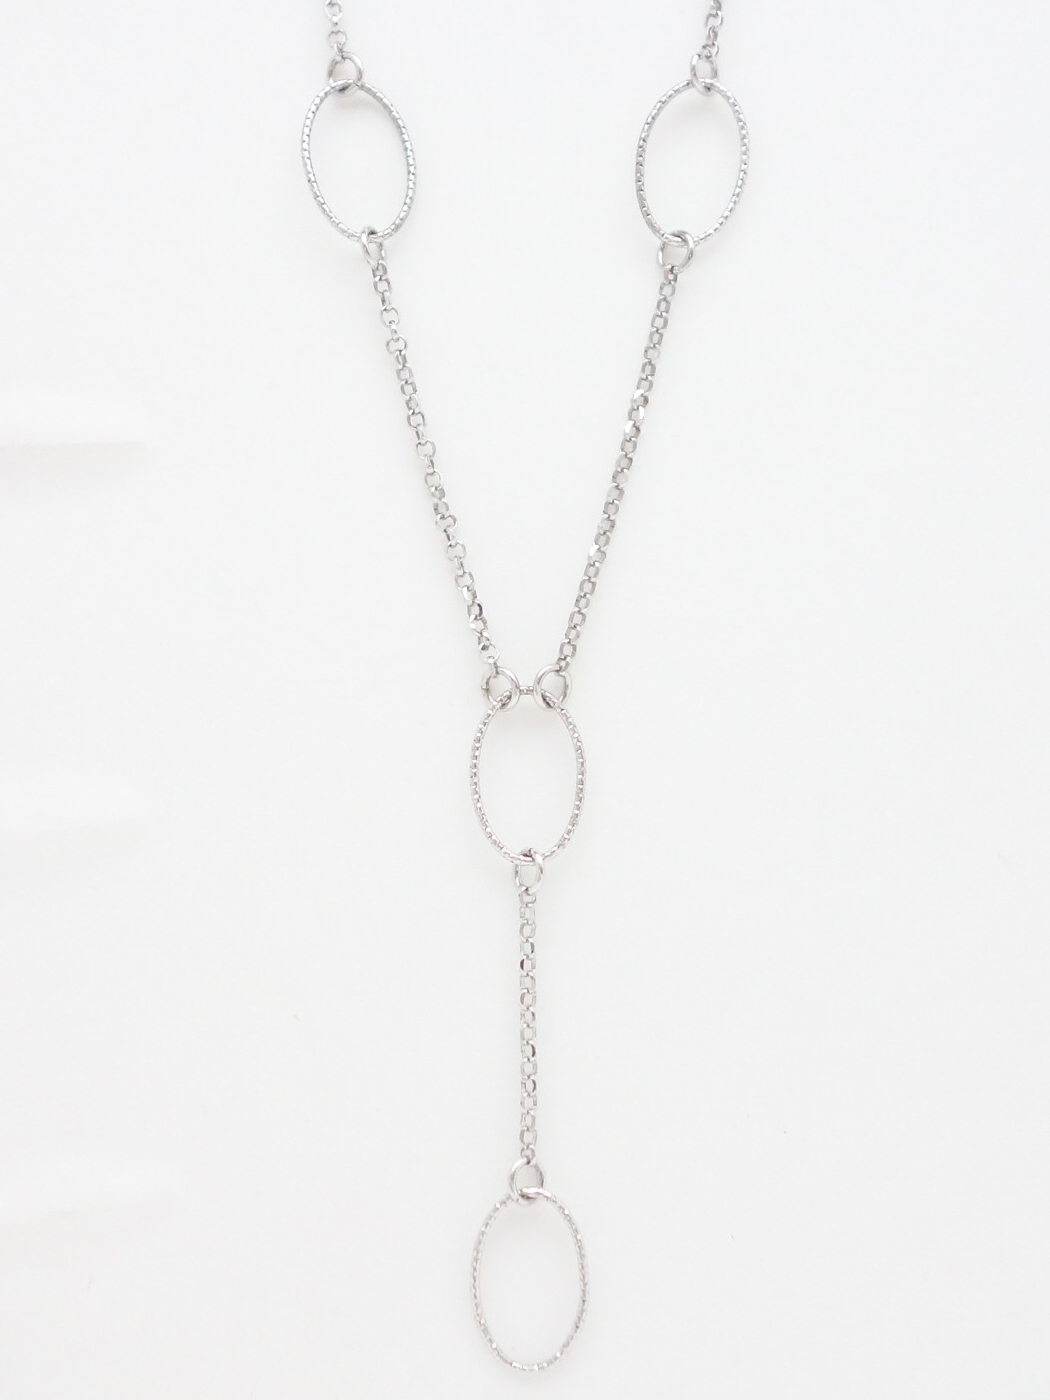 sterling silver shiny chain